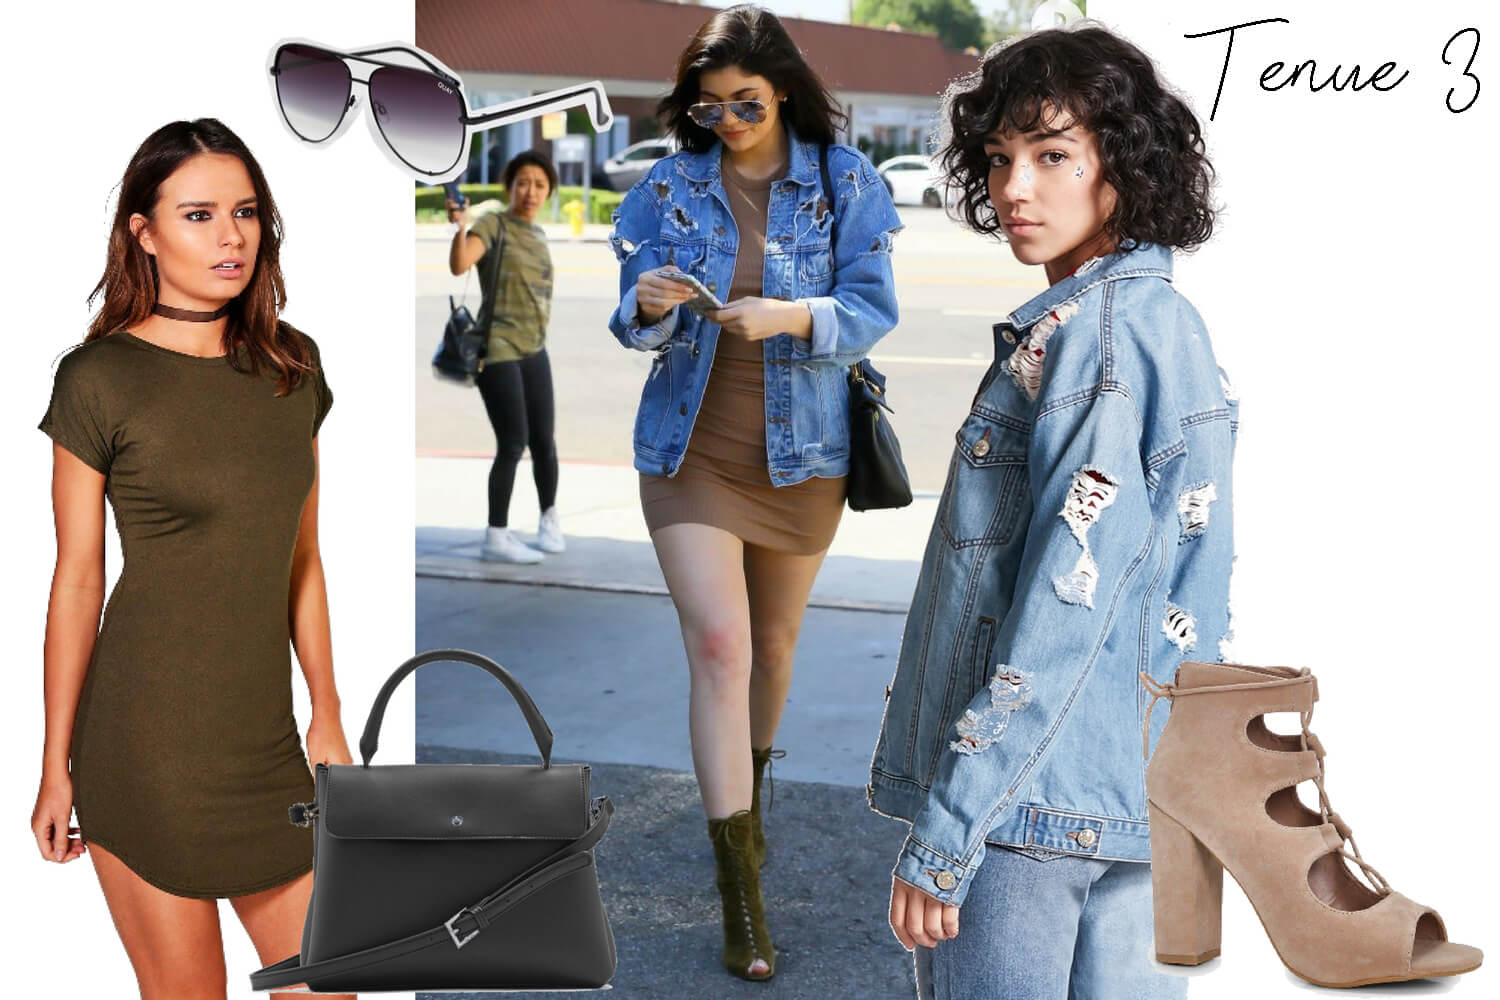 Get the look Kylie Jenner. Tenue 3 | happinesscoco.com